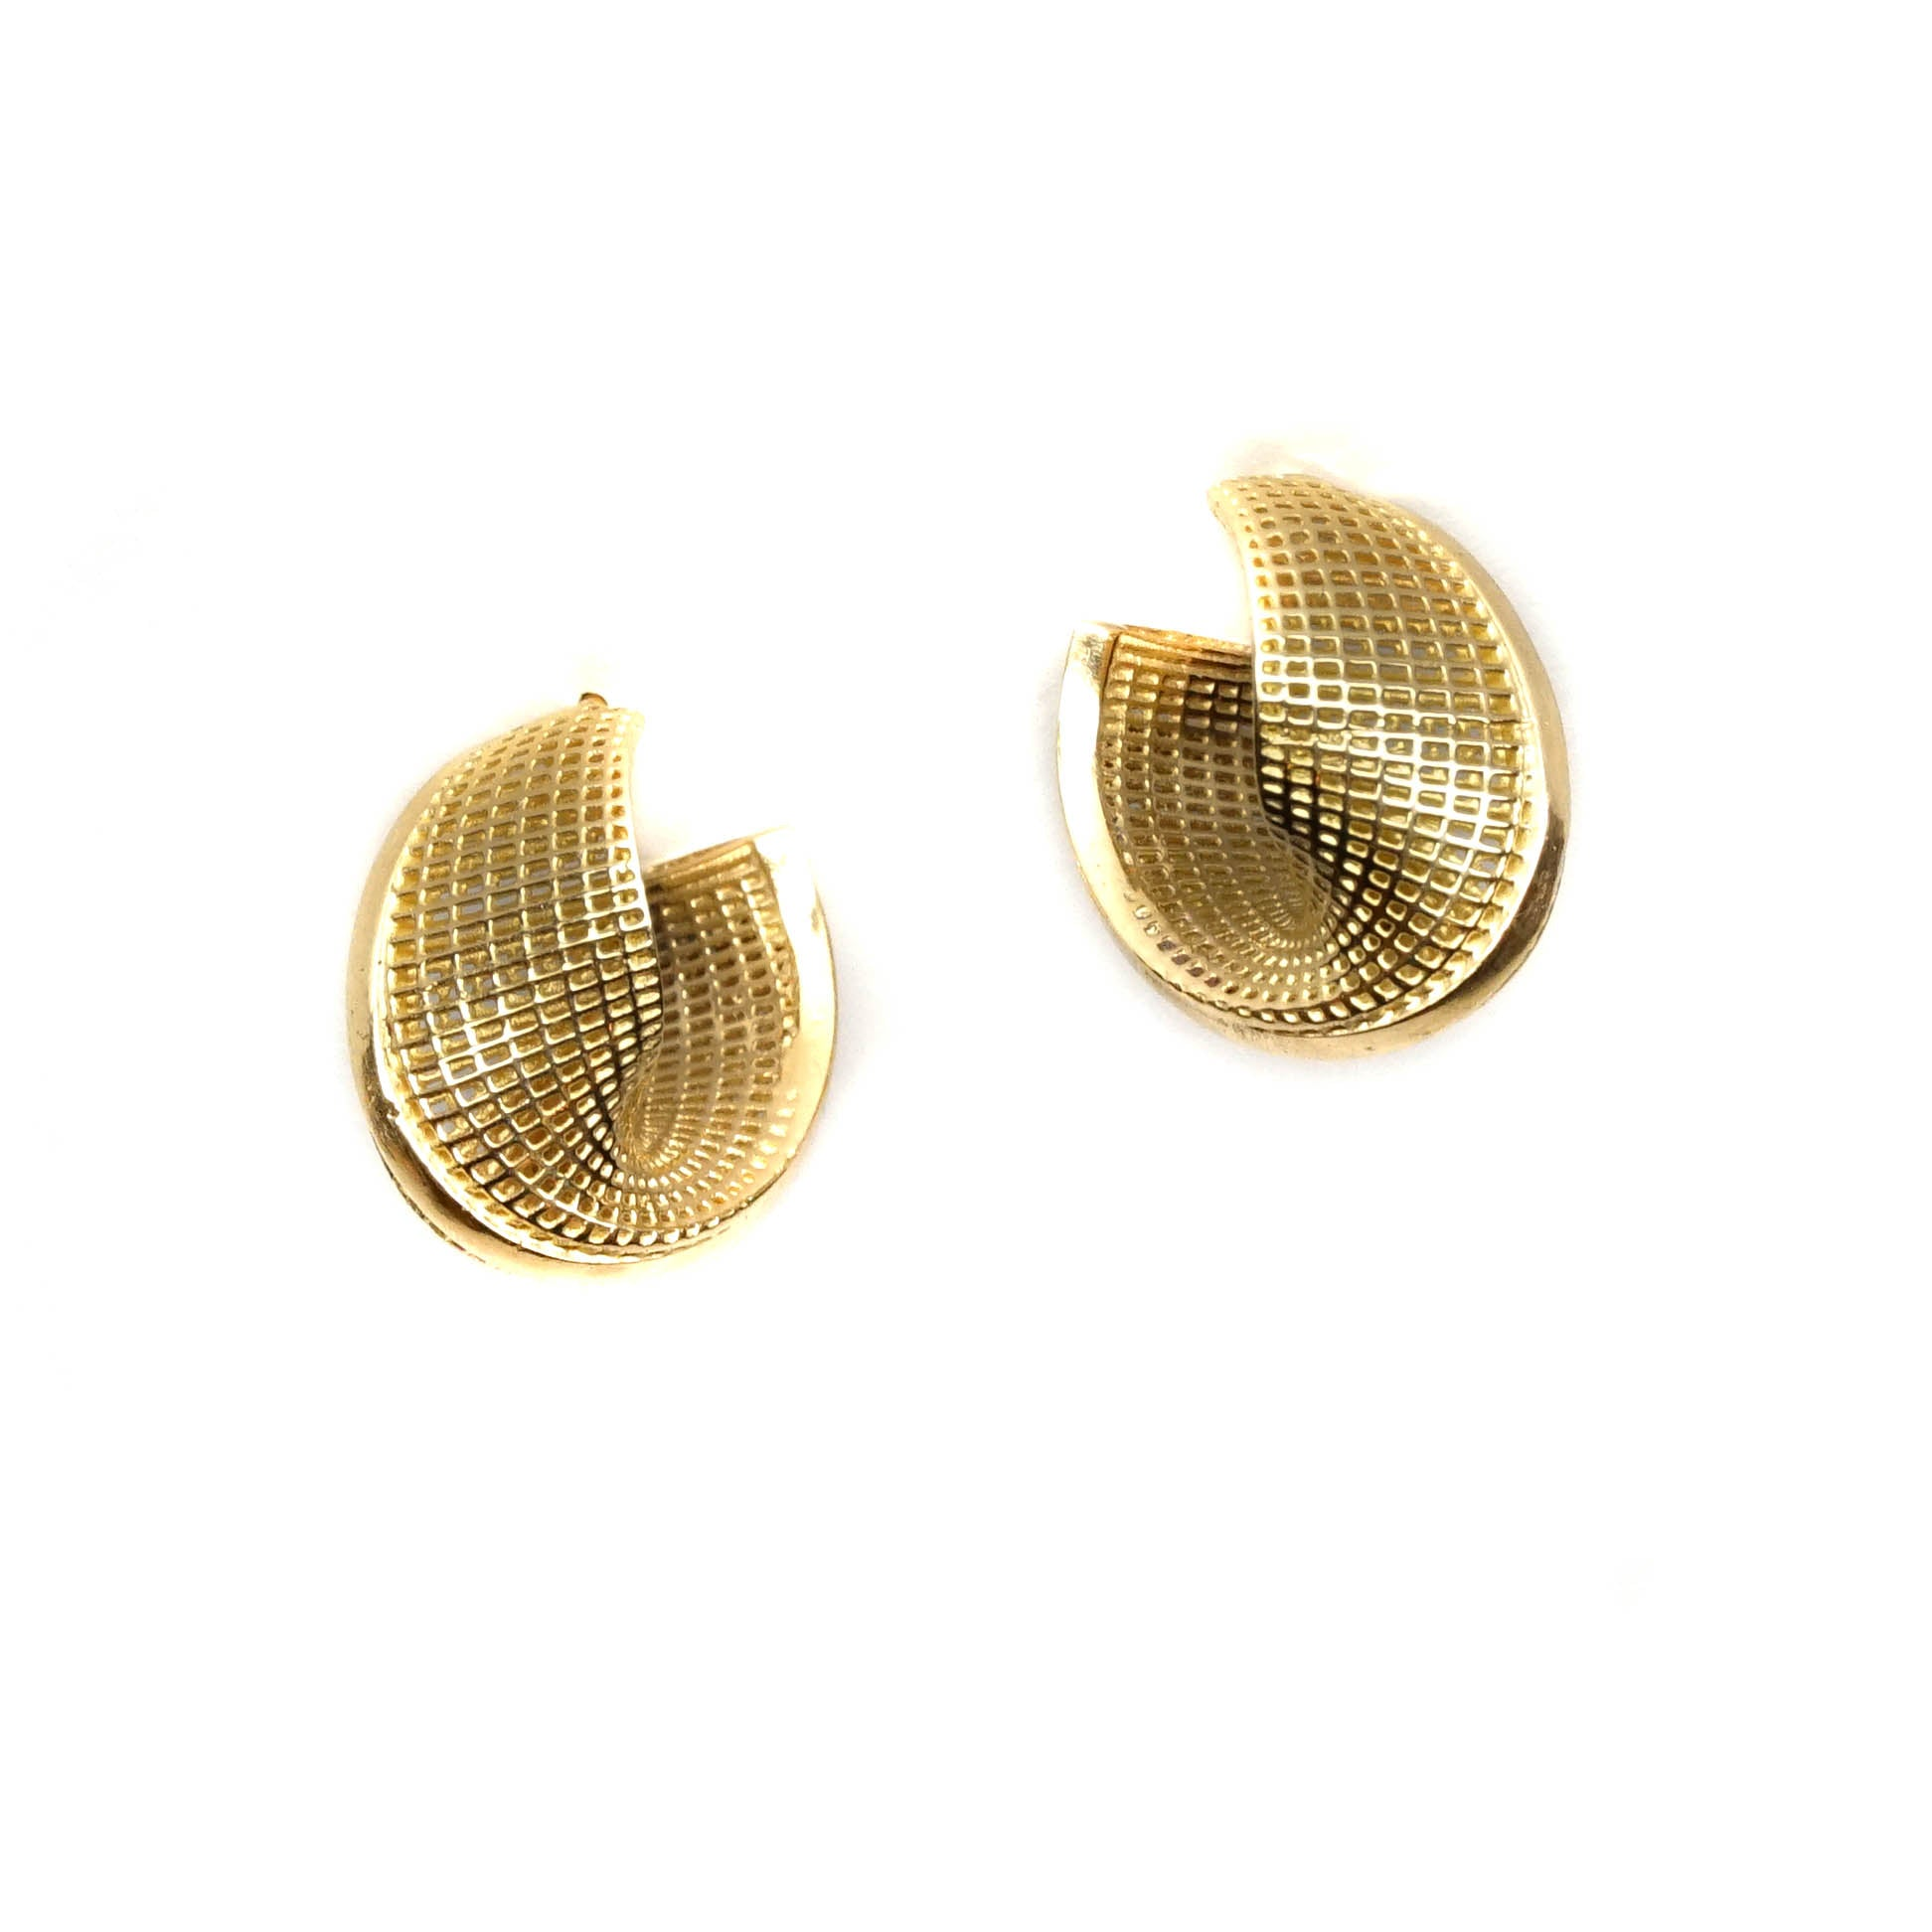 14k - Small Mobius - Line Model Earrings